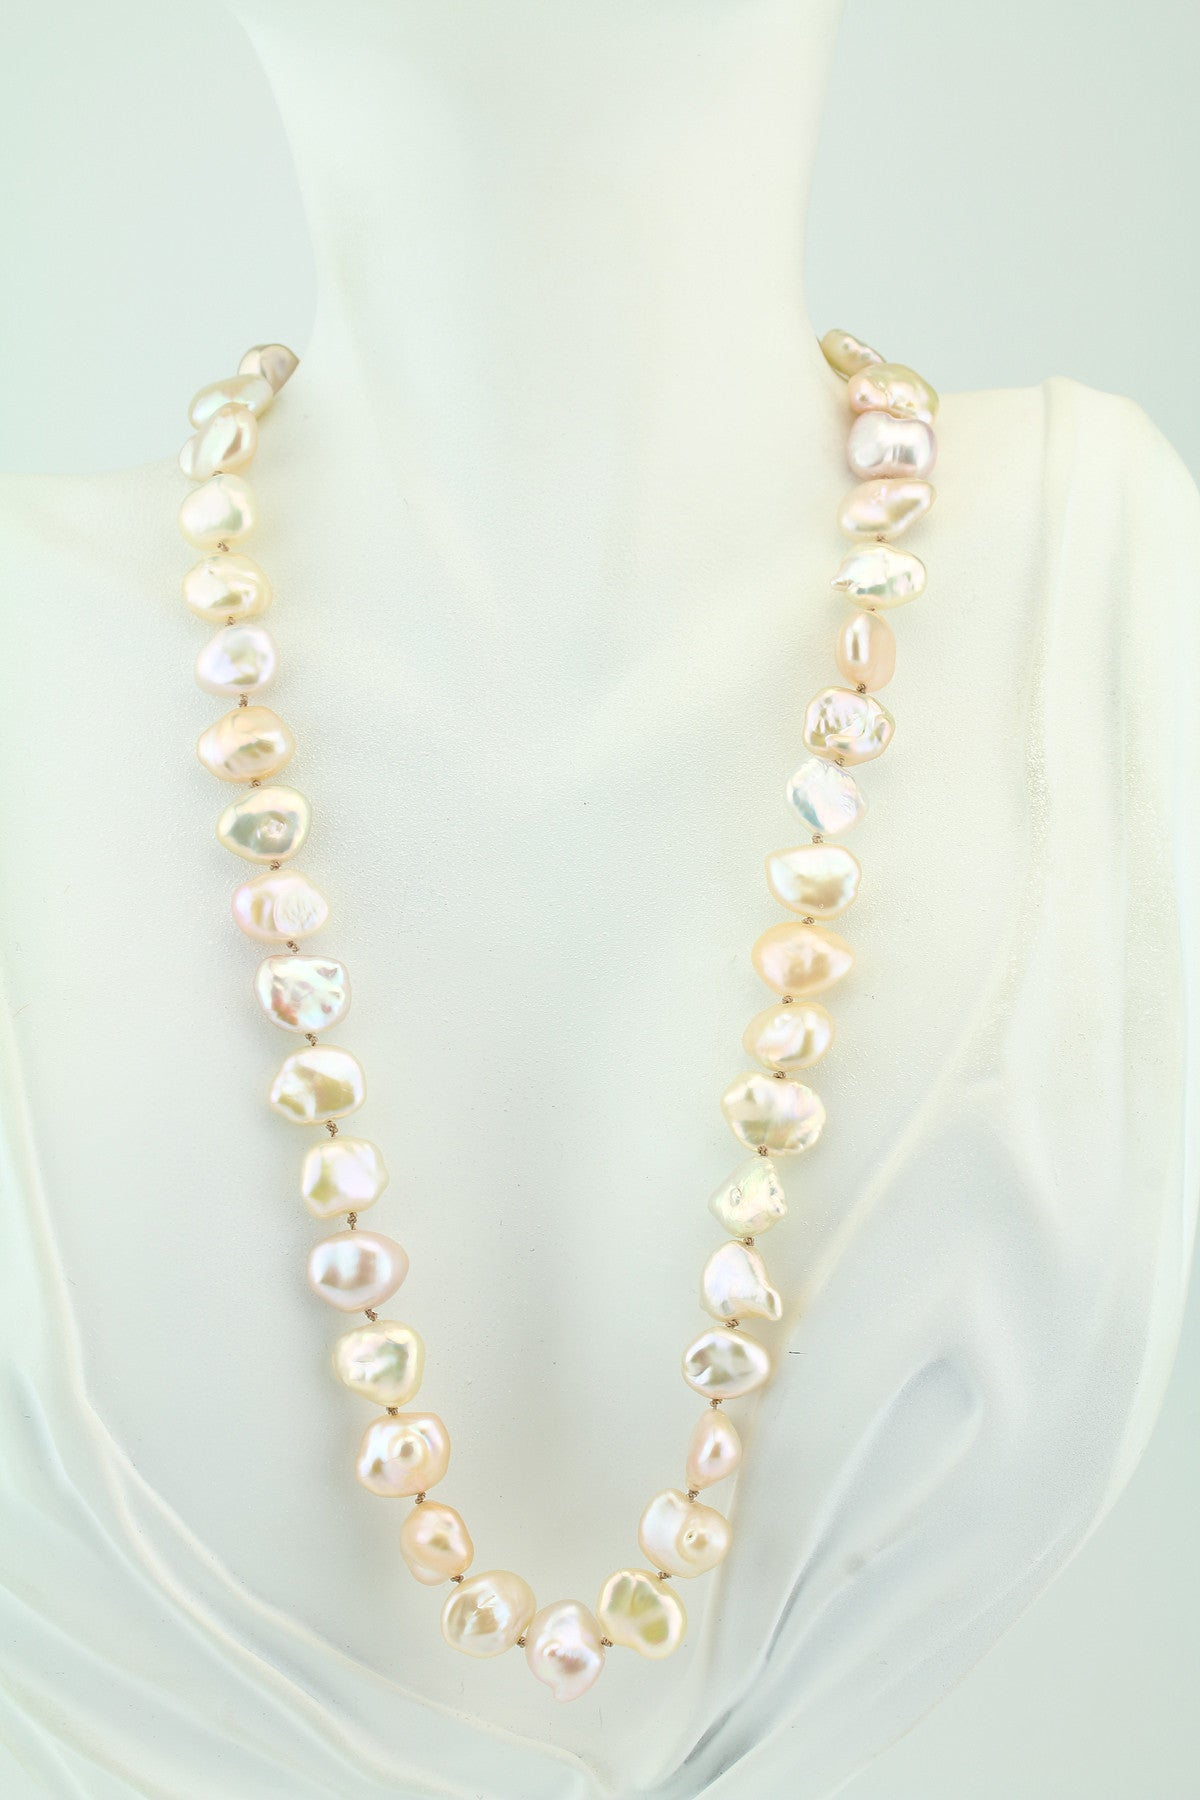 amazon ca princess white set jewelry length aaa freshwater pearl gold dp quality necklace earrings bracelet cultured